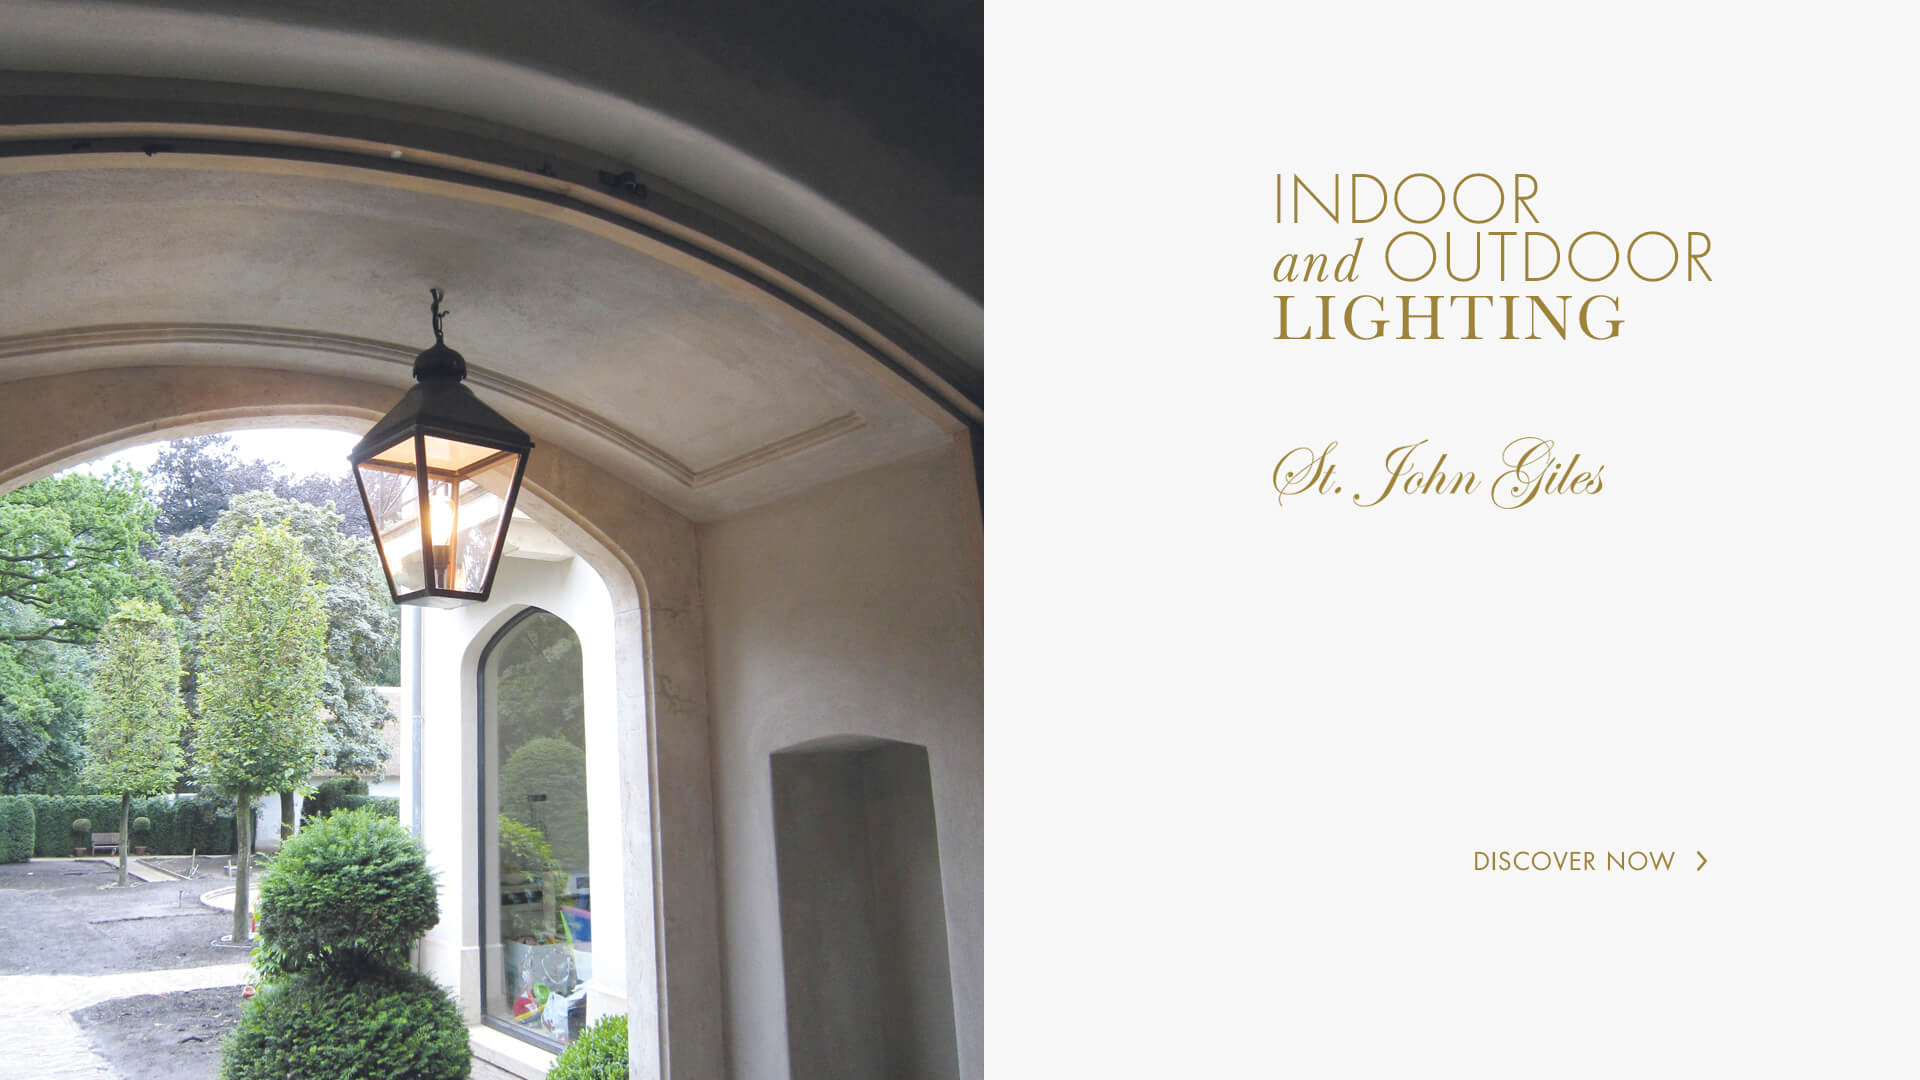 Lerou St. John Giles: Indoor and Outdoor Lighting. Lerou St. John Giles: binnen- en buitenverlichting.